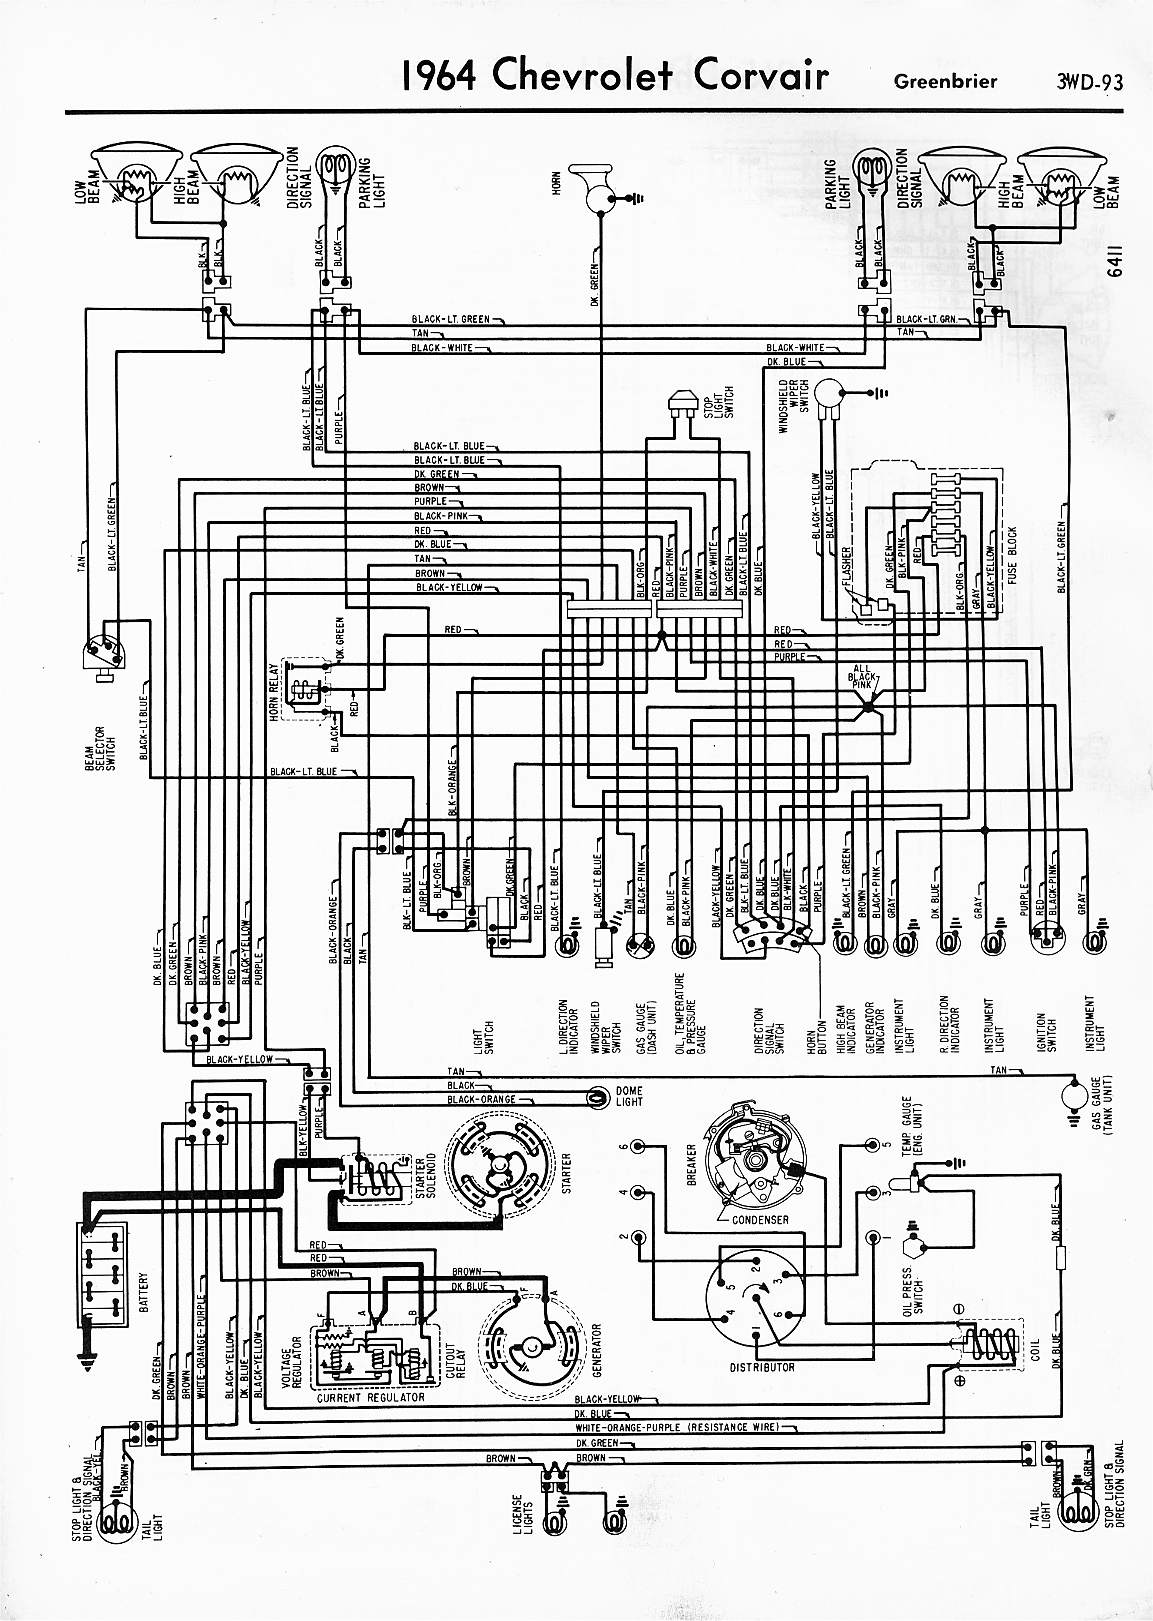 57 - 65 chevy wiring diagrams 1963 corvair wiring diagram 66 corvair wiring diagram #4